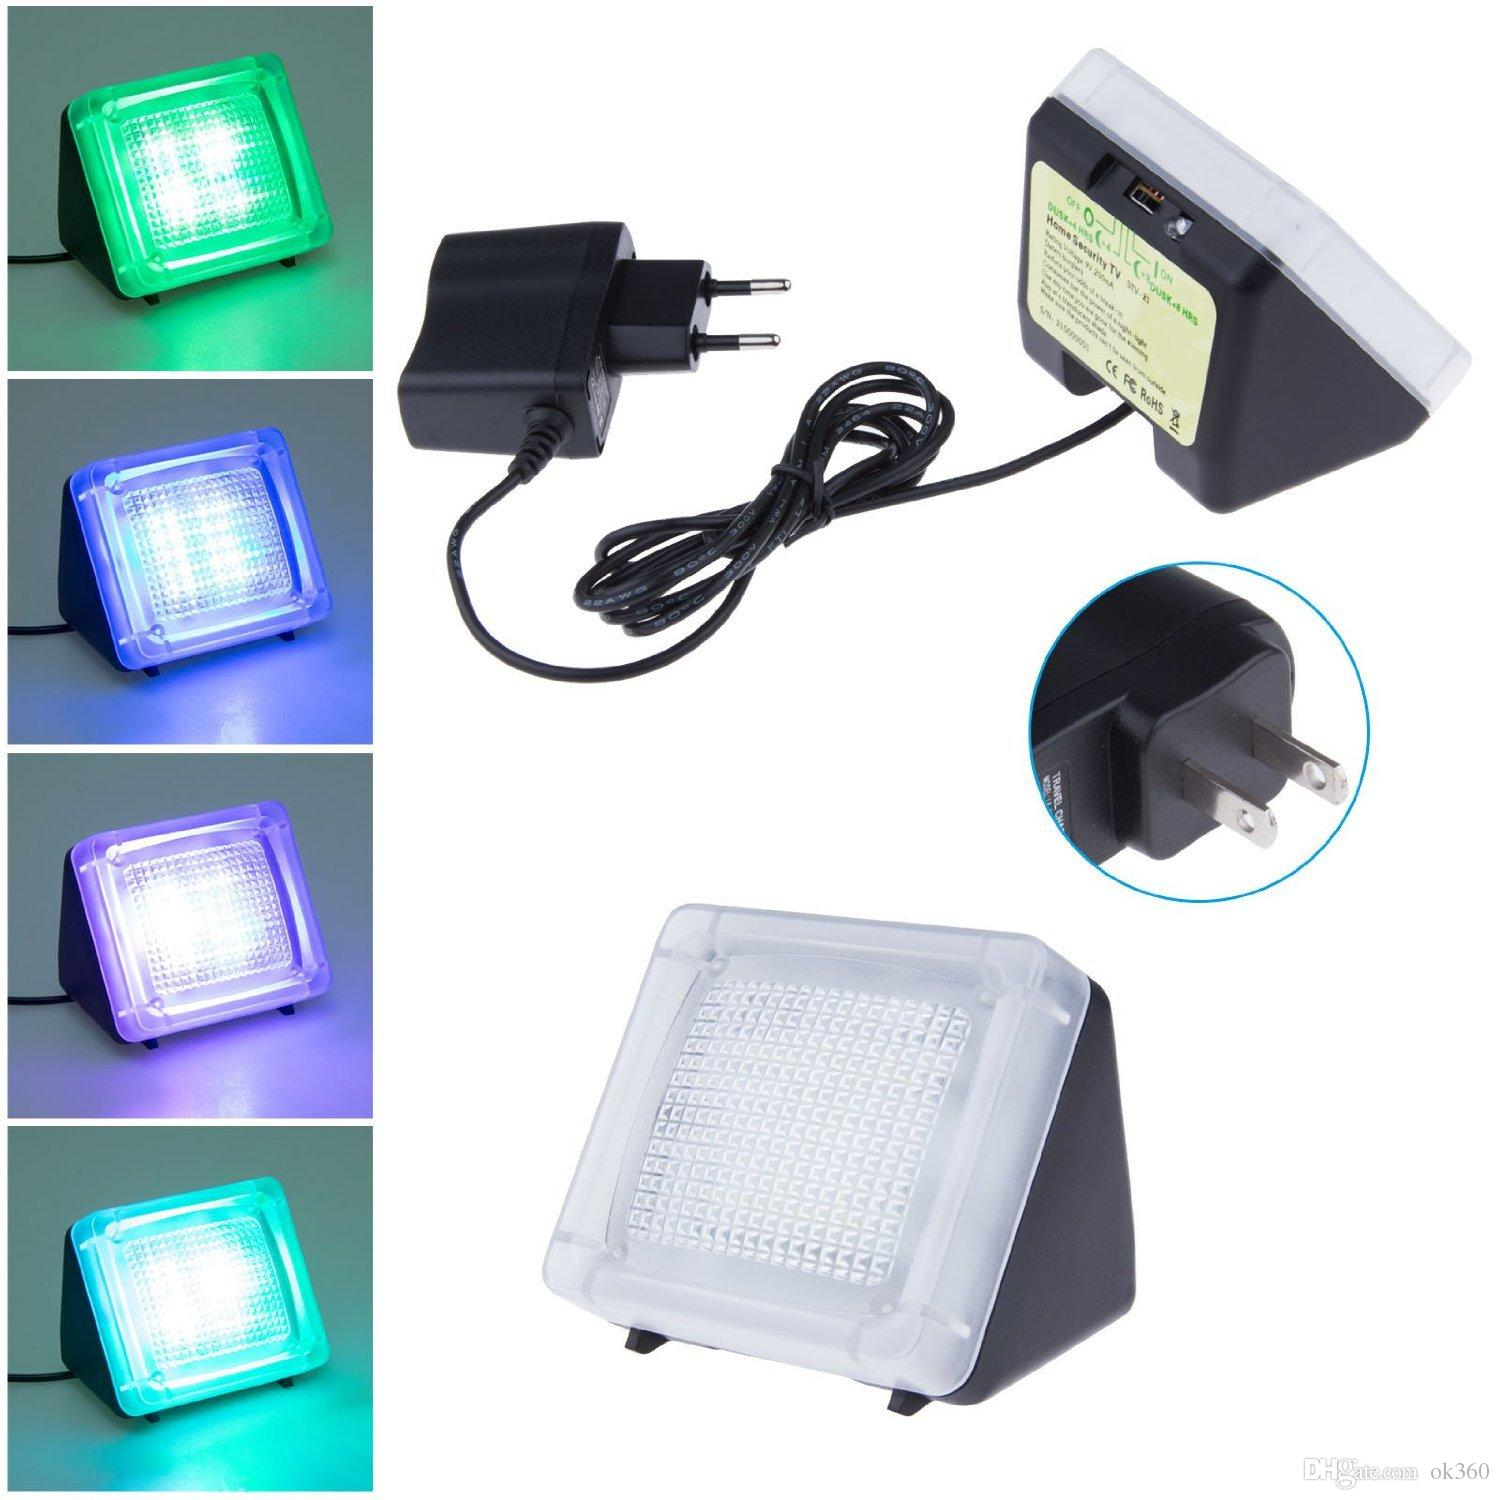 Fake tv led security sensor light built in light sensortimer fake tv led security sensor light built in light sensortimer burglar deterrent home security night light tv sensor fake tv led light tv security light mozeypictures Image collections